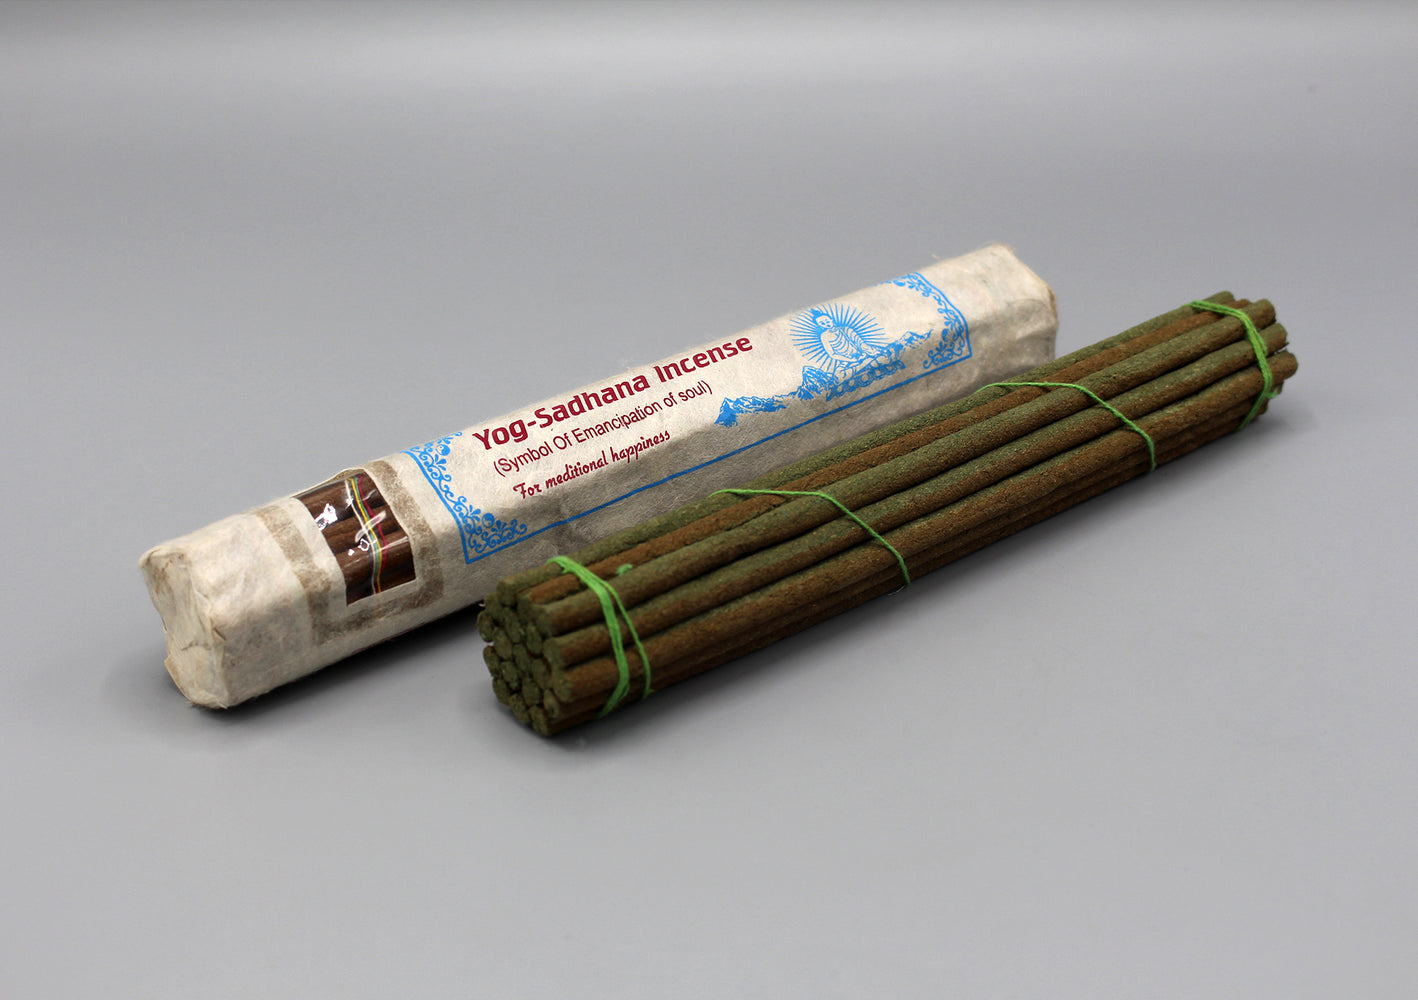 Yog Sadhana Meditation Incense - nepacrafts